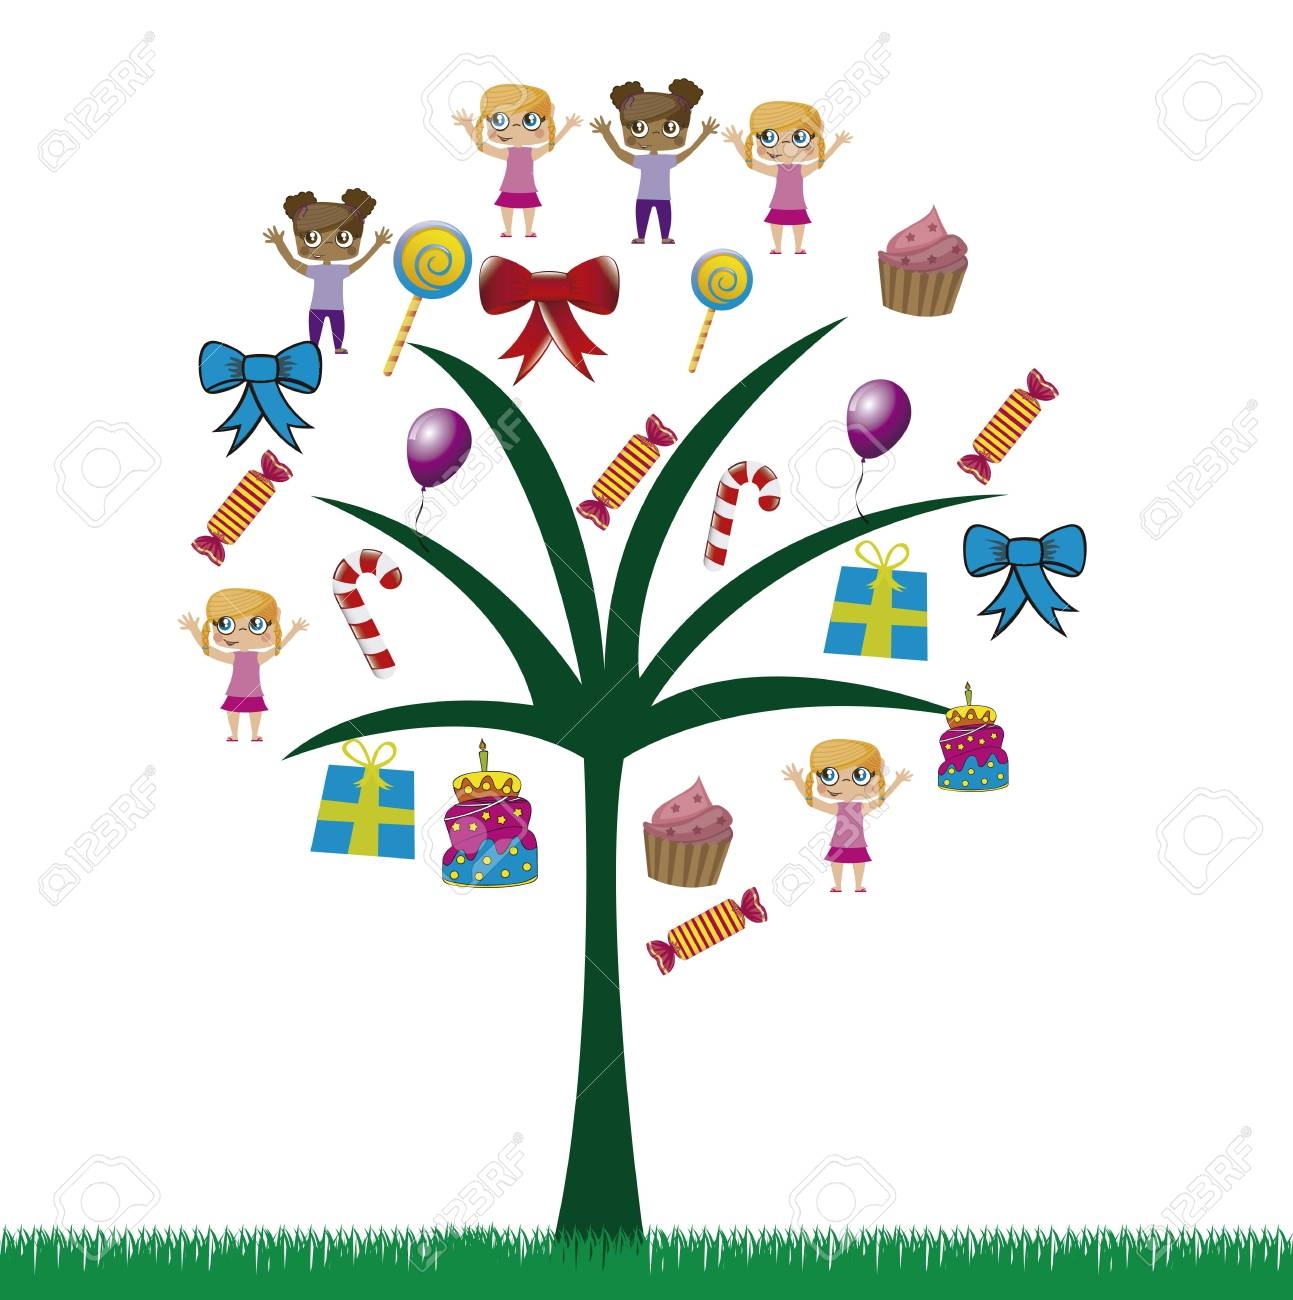 birhday icons in a tree over white background vector illustration Stock Vector - 16477331